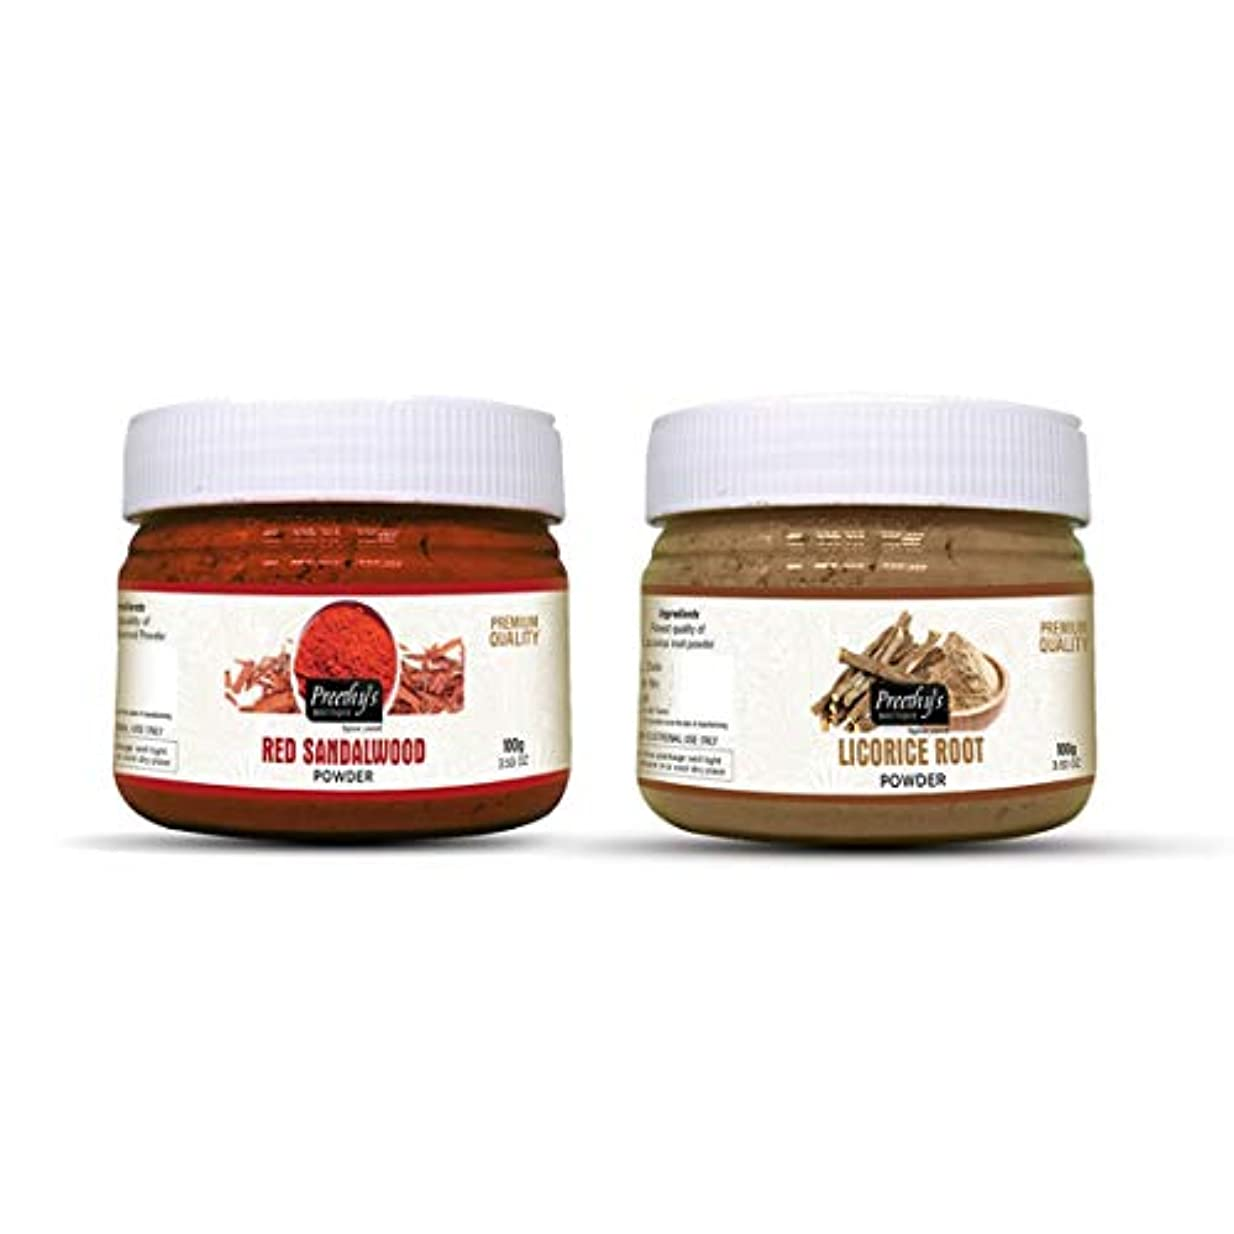 戦うデータム休みCombo offer Of Licorice root powder 100gm & Red sandalwood powder 100gm - Natural Remedies for Skin Disorders,...